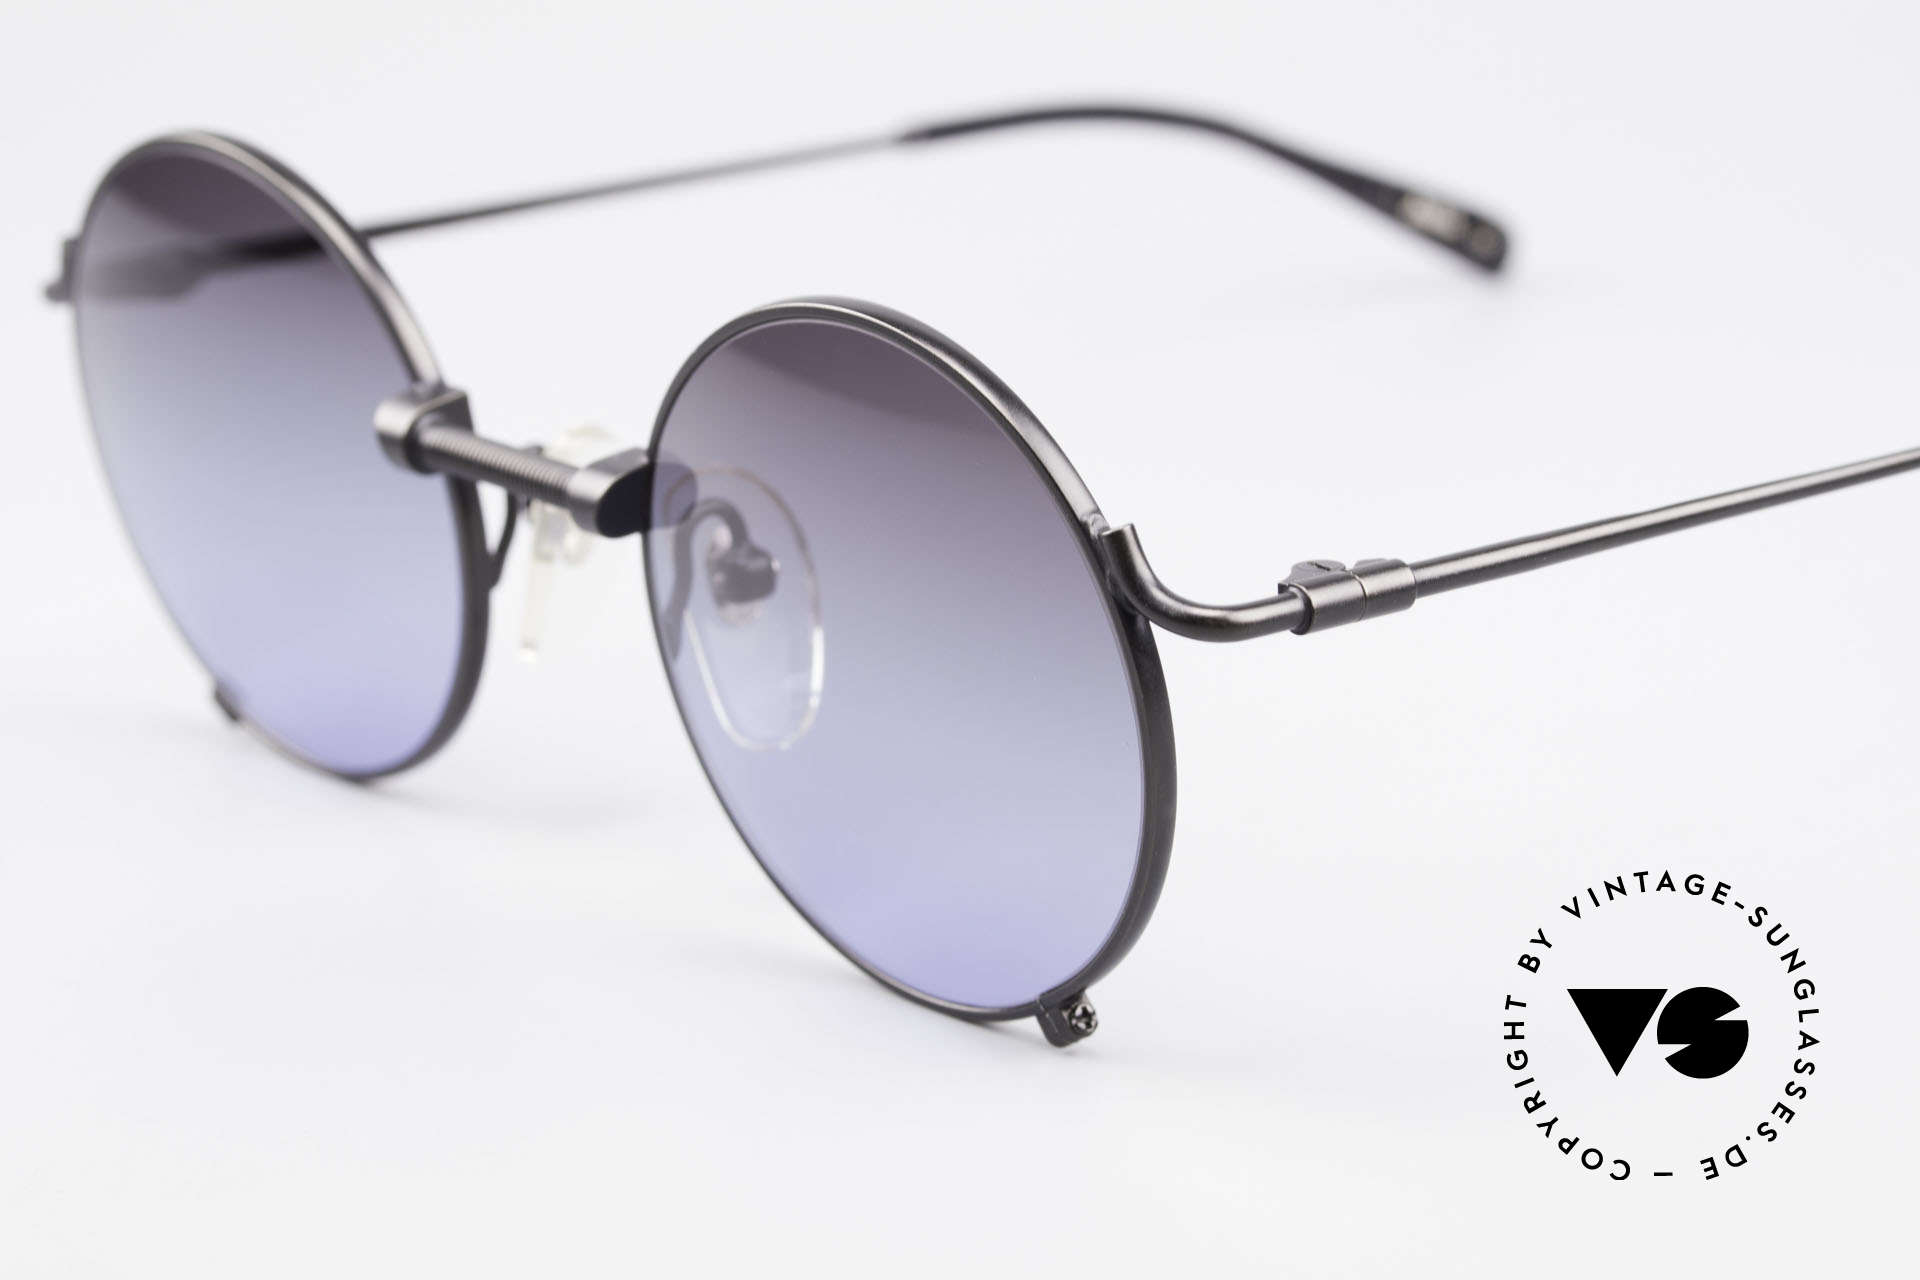 Jean Paul Gaultier 55-7162 Round Vintage Sunglasses, new old stock (like all our vintage JPG shades), Made for Men and Women